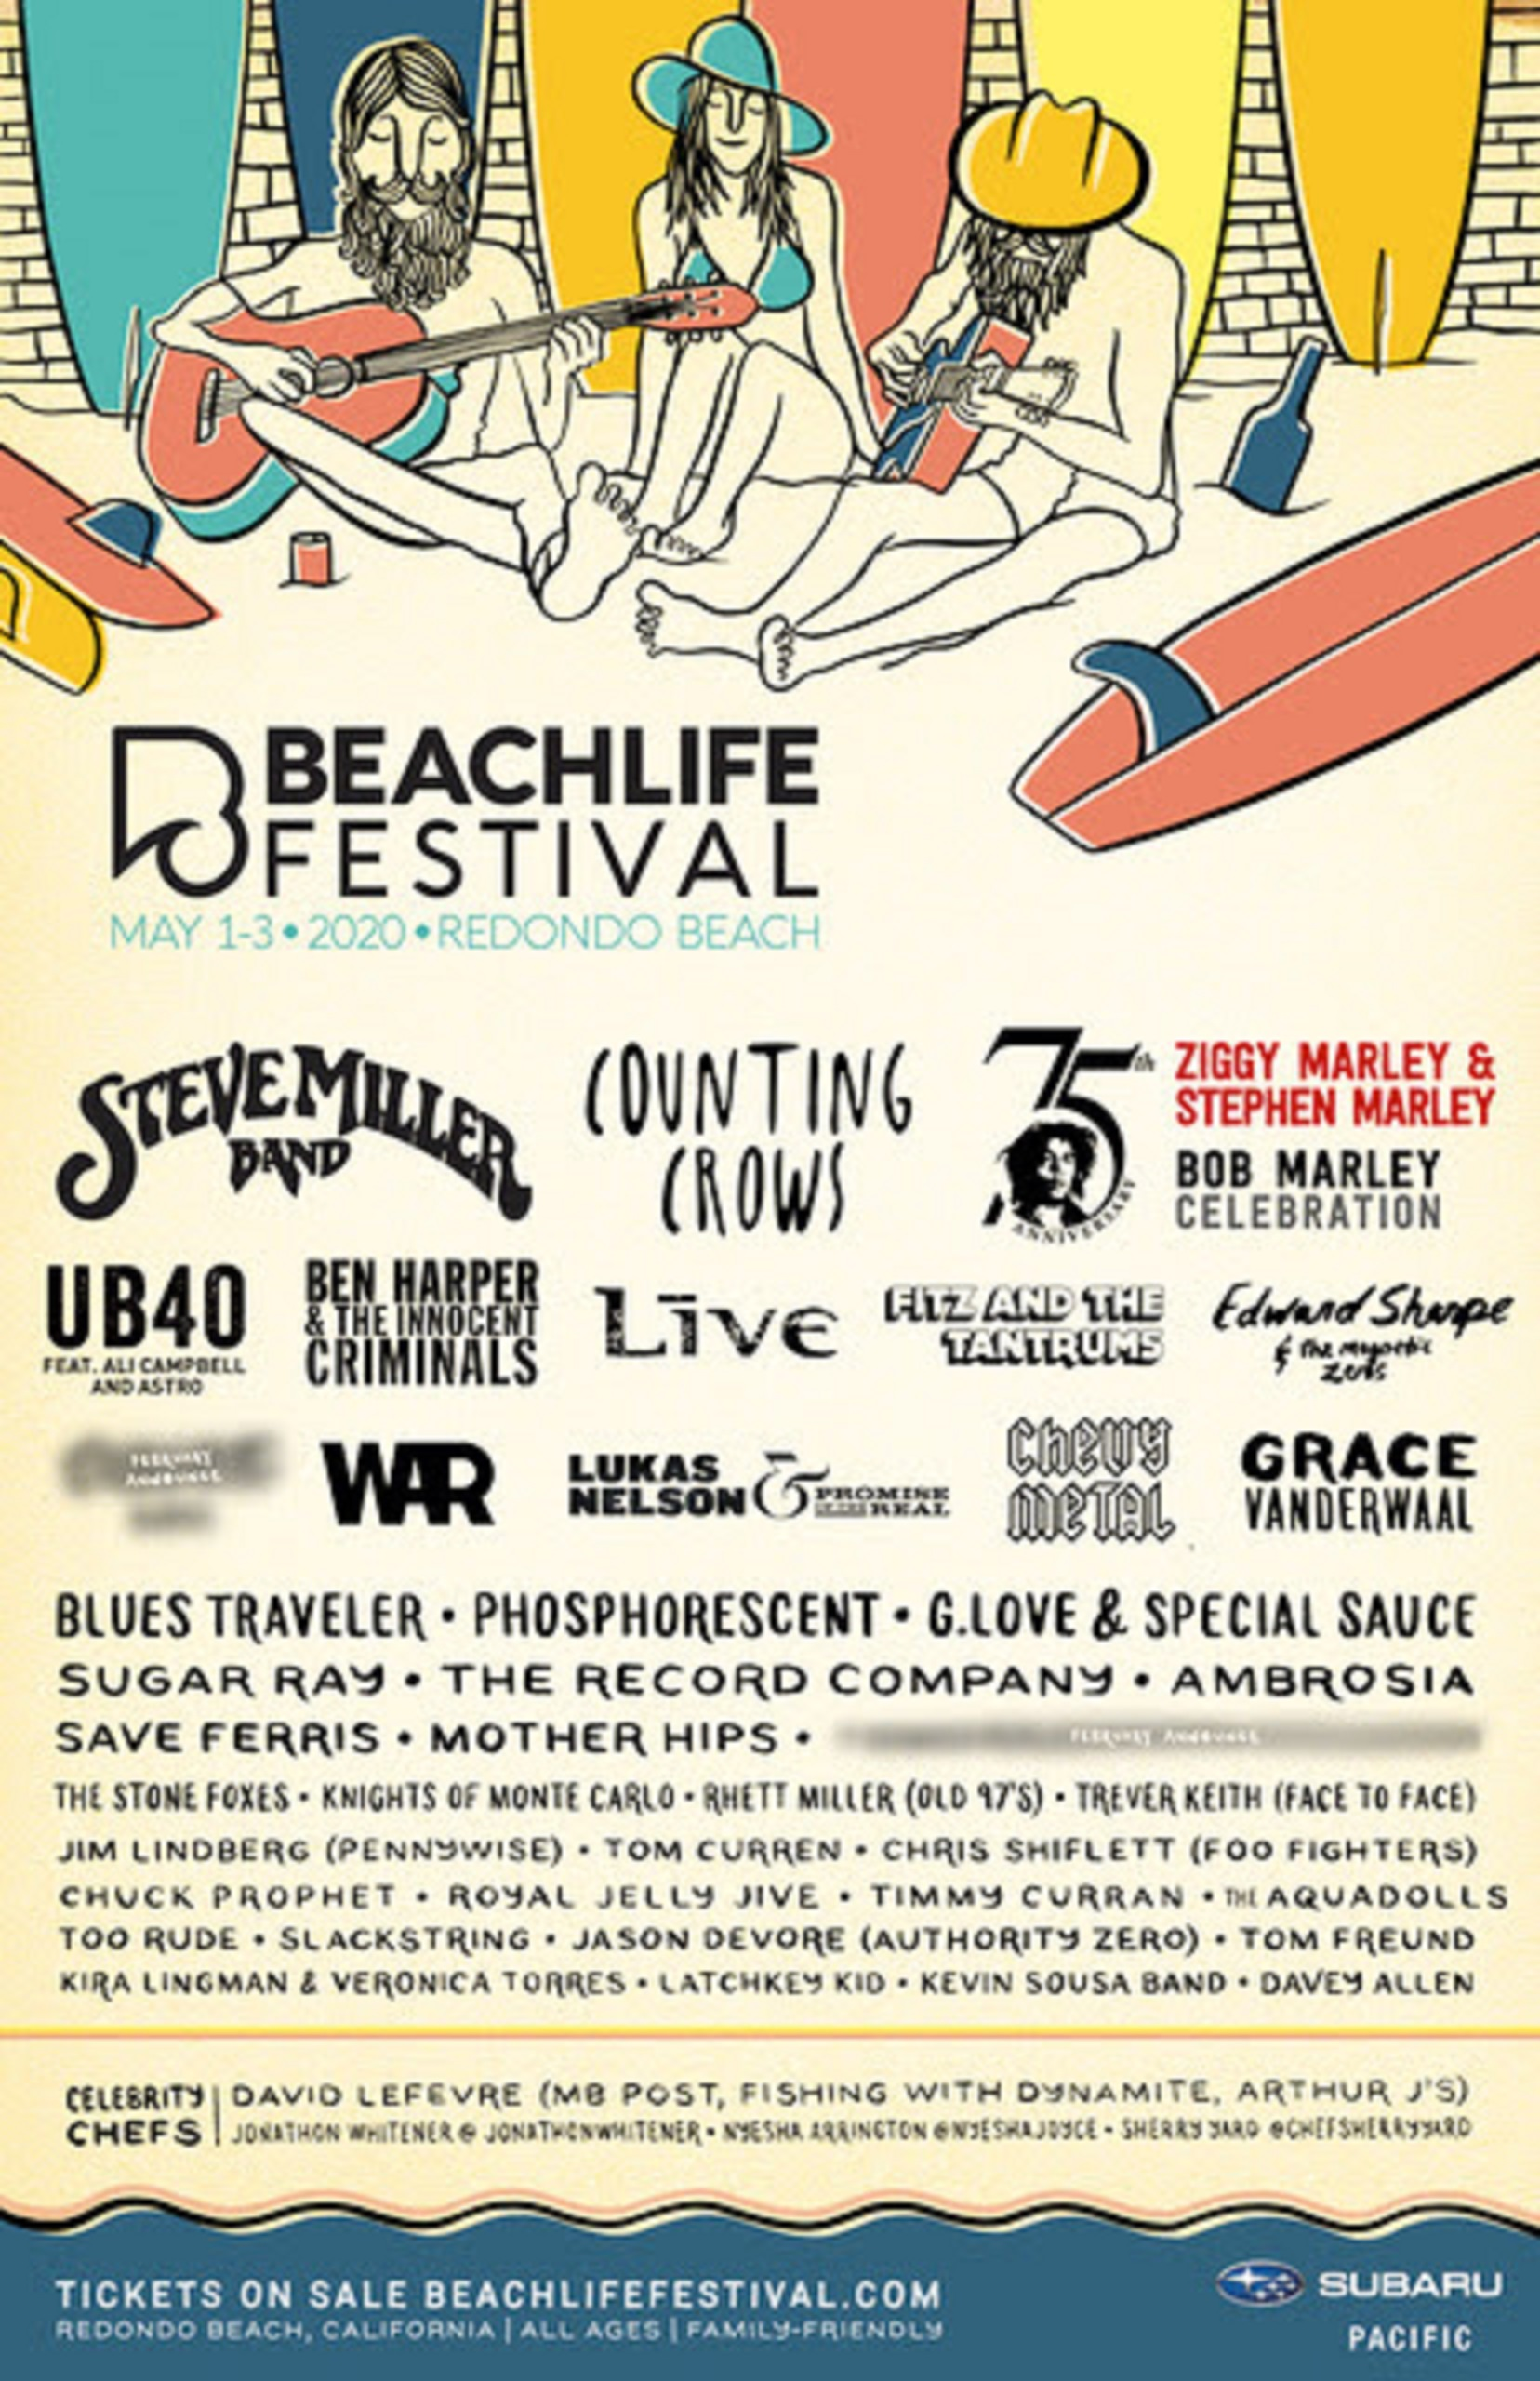 BEACHLIFE Announces STEVE MILLER BAND, COUNTING CROWS, BOB MARLEY Tribute with ZIGGY MARLEY & STEPHEN MARLEY, and more